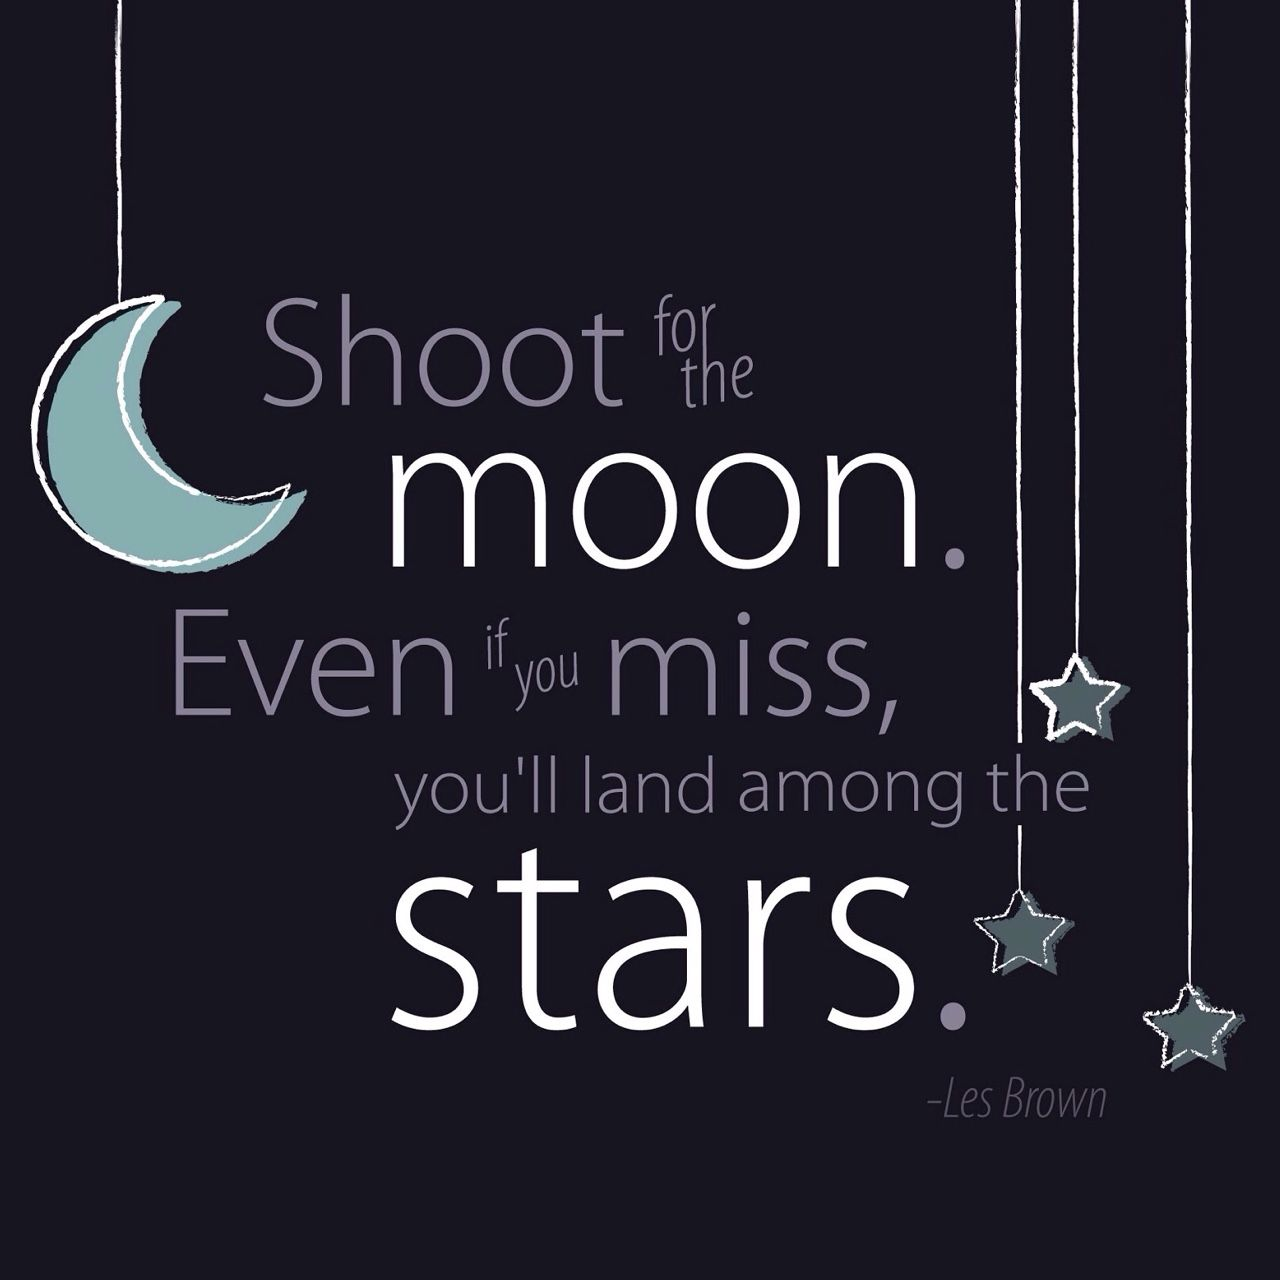 Short Inspirational Quotes Tumblr: Inspirational Quotes Tumblr Shoot For The